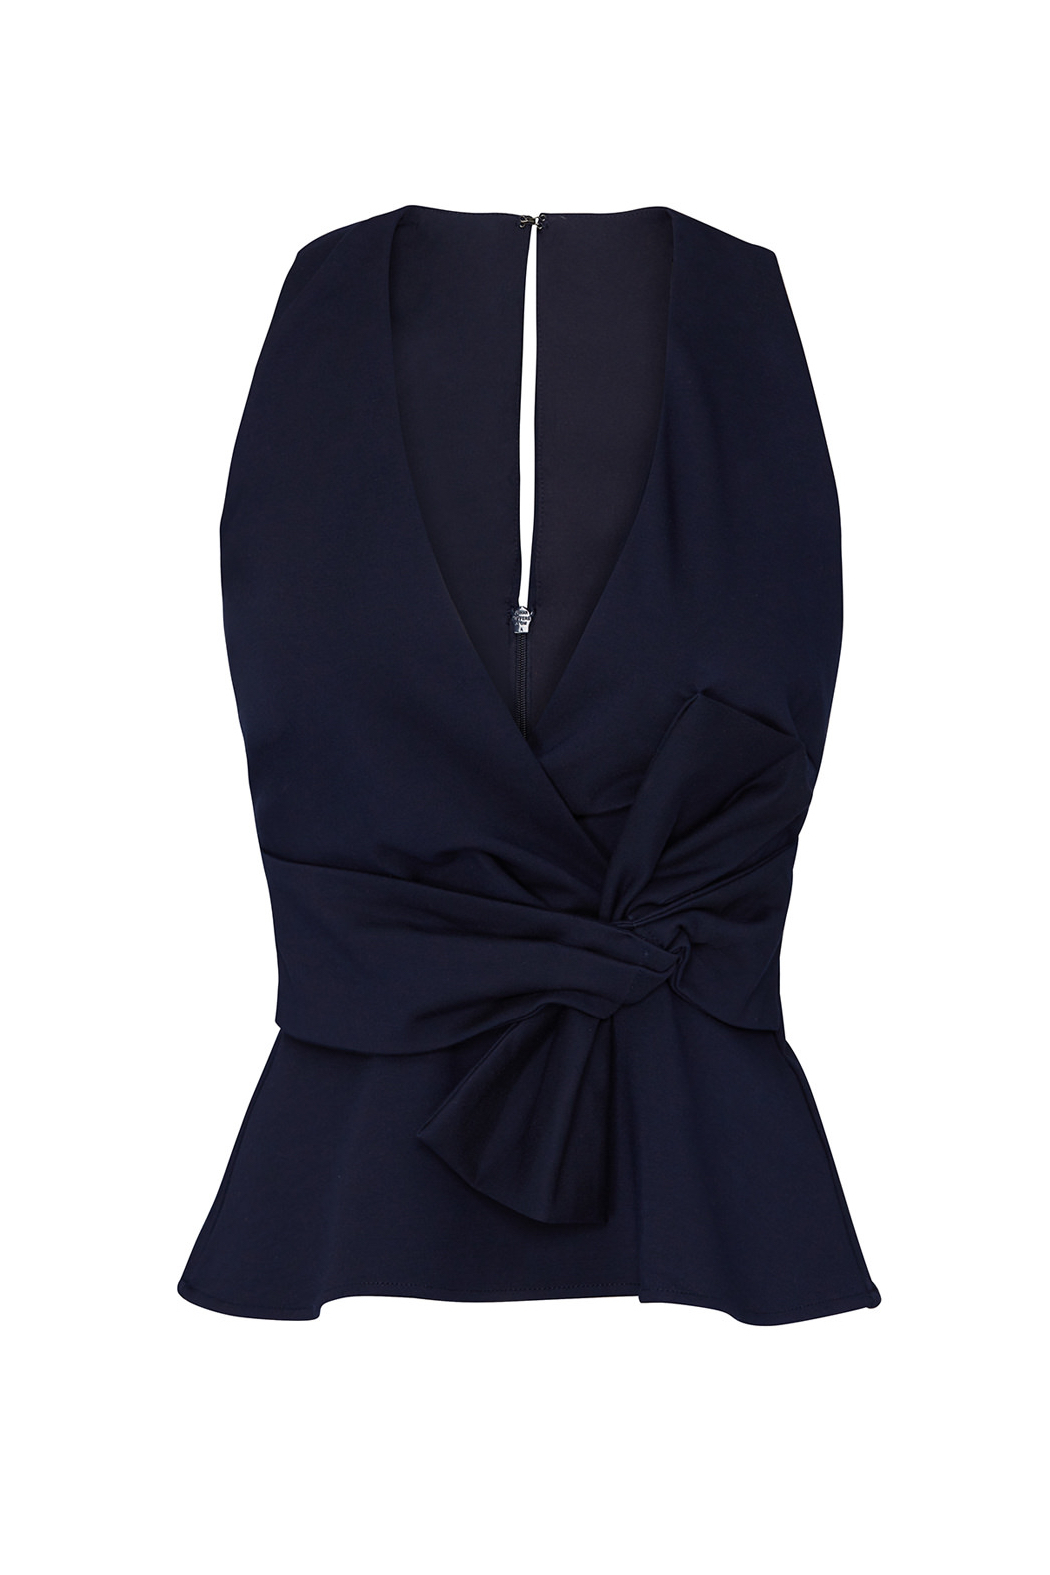 Adelyn Rae Tollie Knit Bow Top - Back Cropped Image